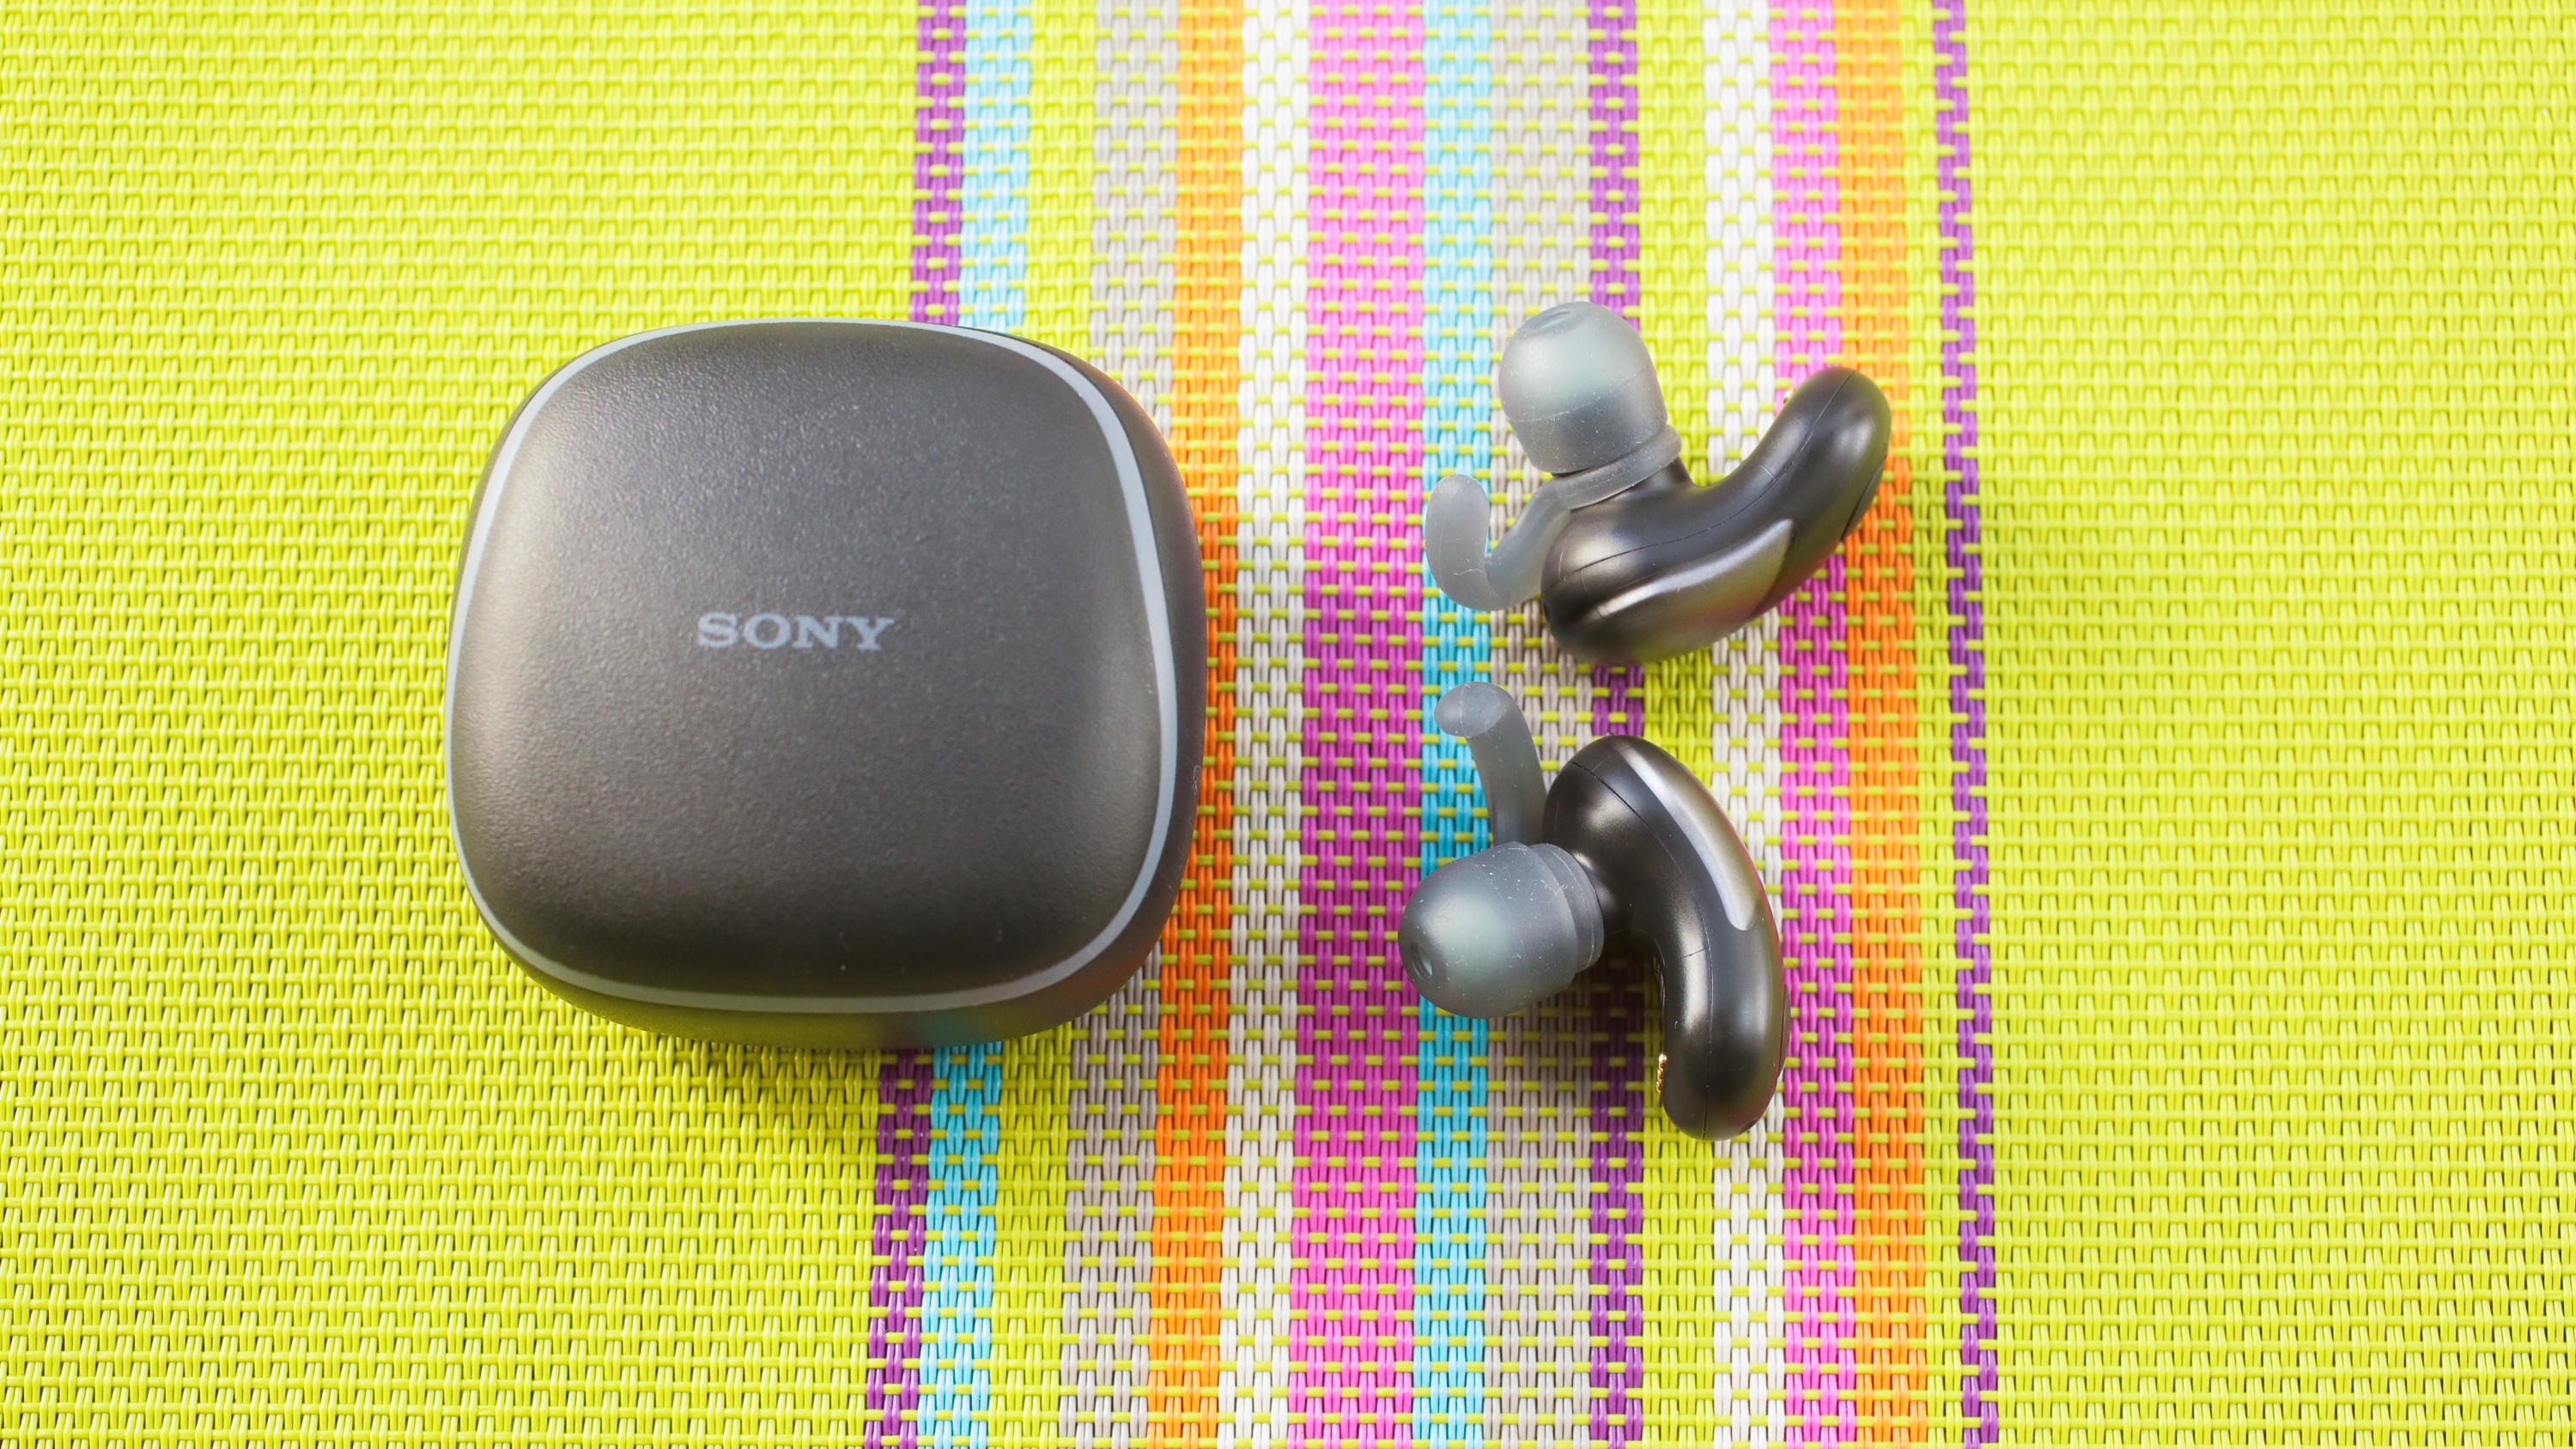 Video: Sony's latest truly wireless earphones are its best yet